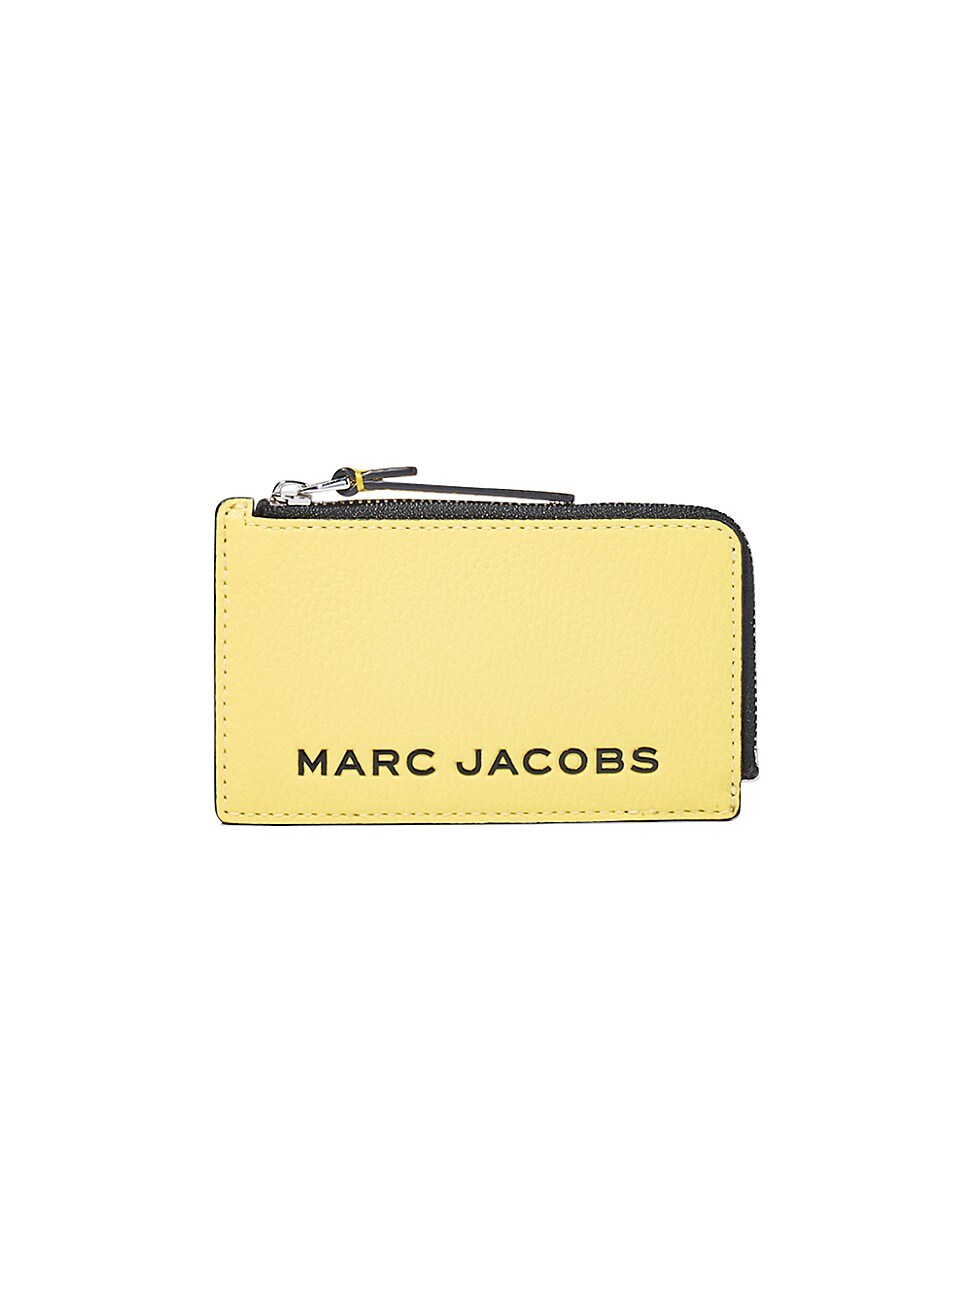 The Marc Jacobs WOMEN'S SMALL THE BOLD LEATHER WALLET